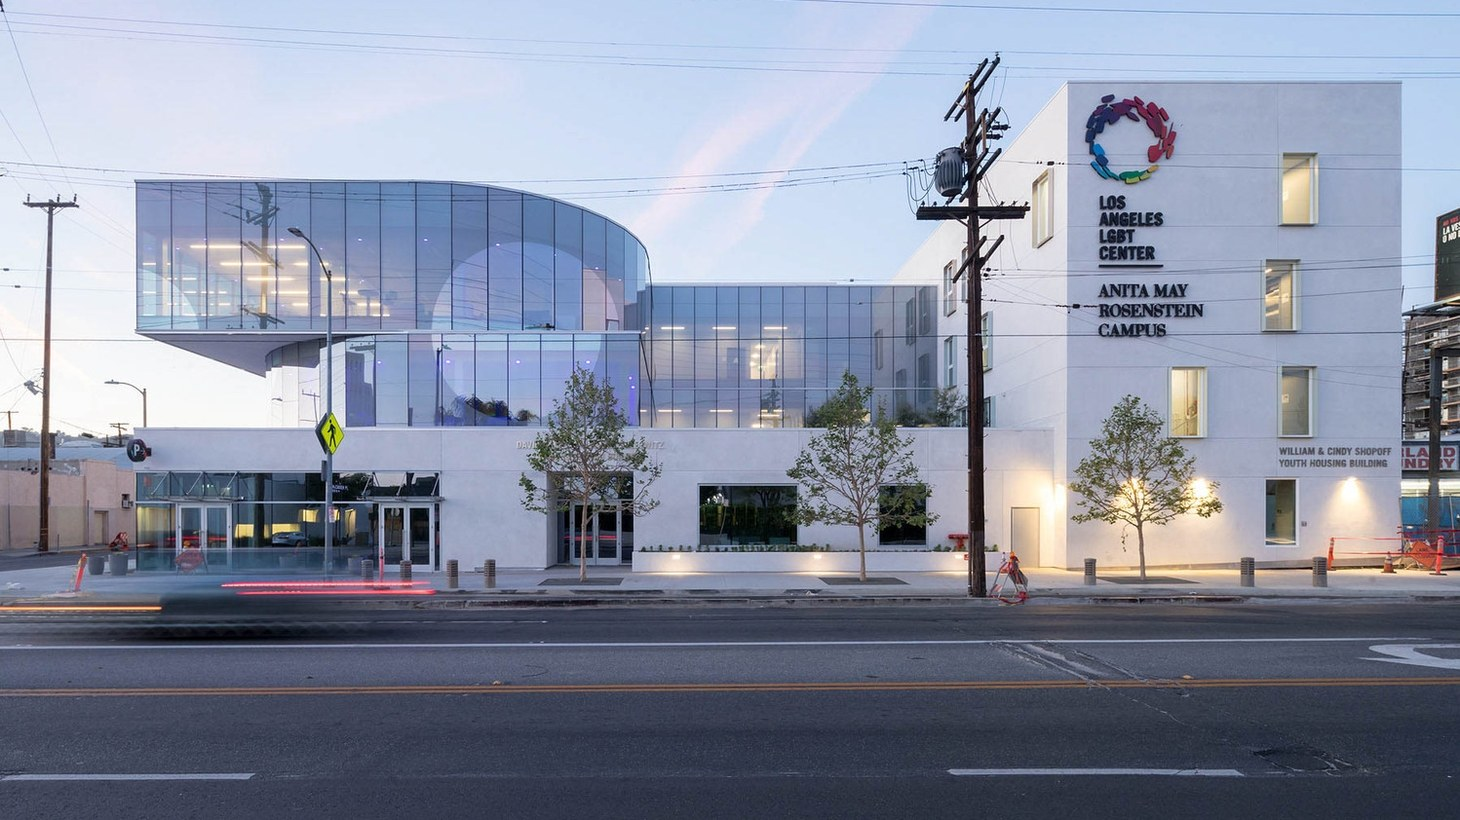 The LA LGBT Center's Anita May Rosenstein campus in Hollywood, designed by Leong Leong and Killefer Flammang Architects.